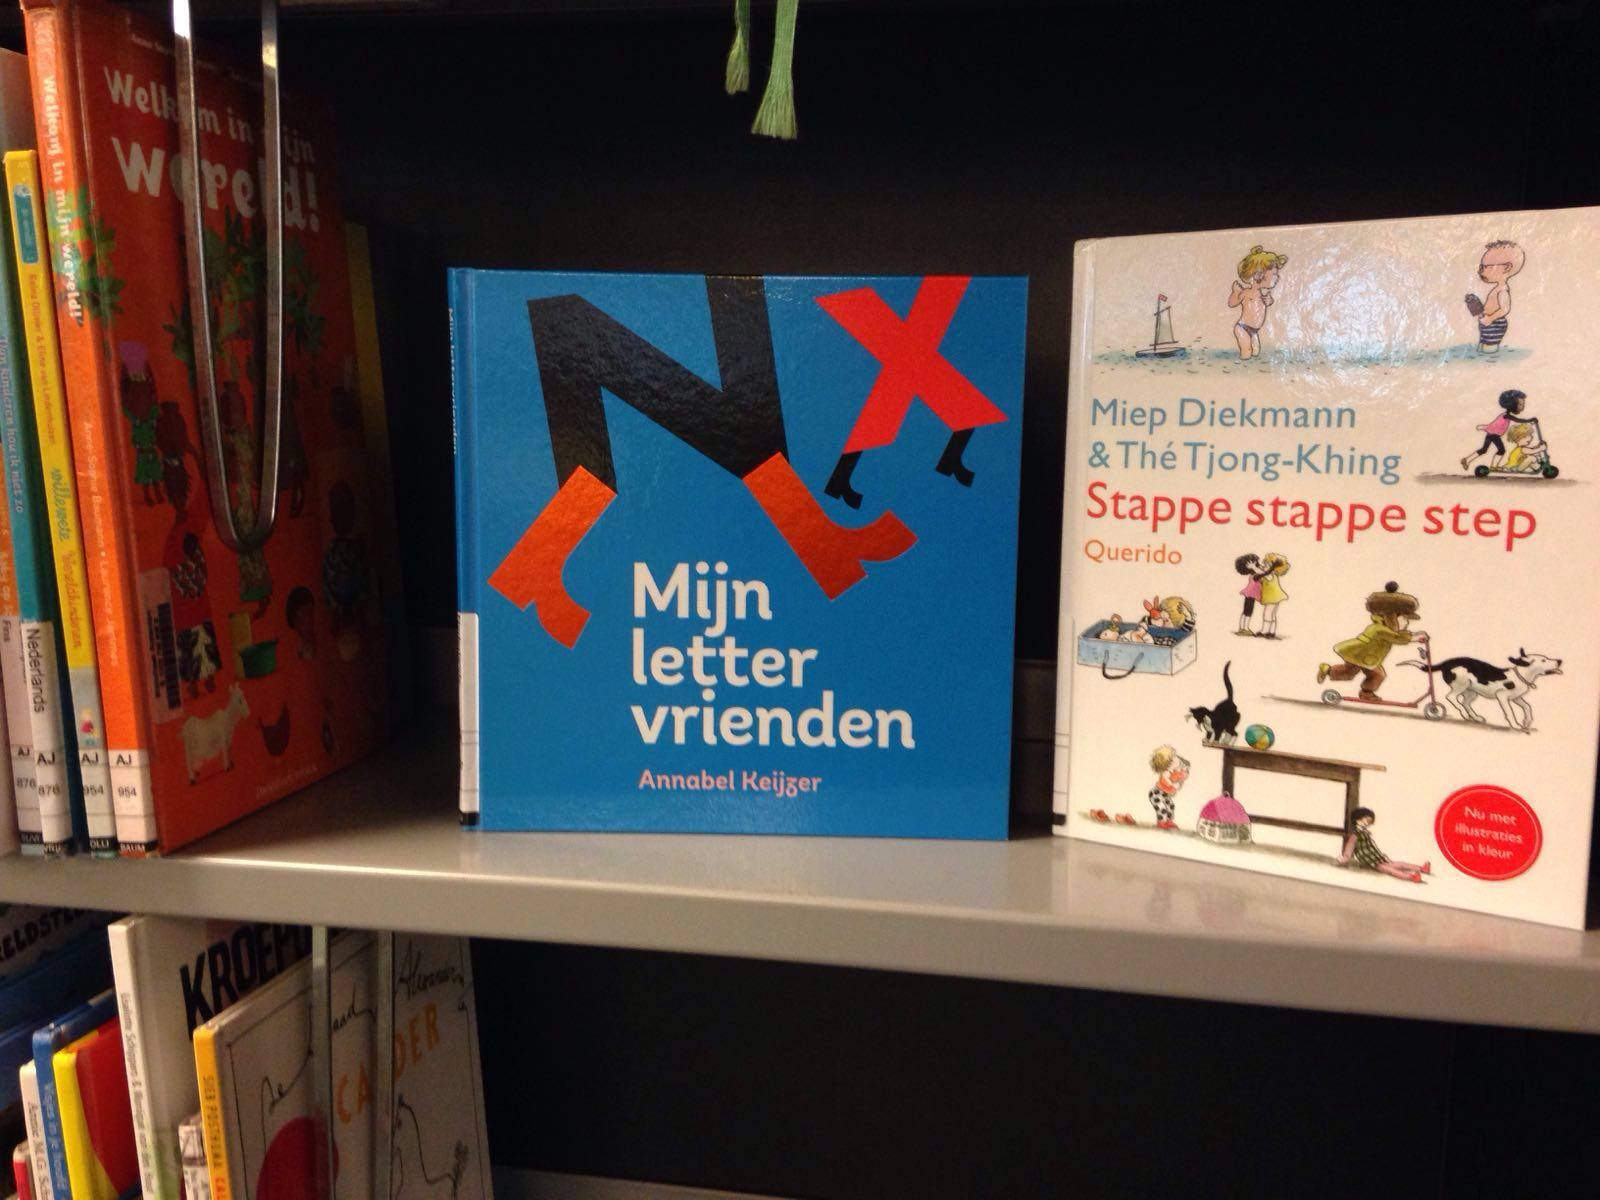 Mijn letter vrienden (dutch) is also available in the libraries